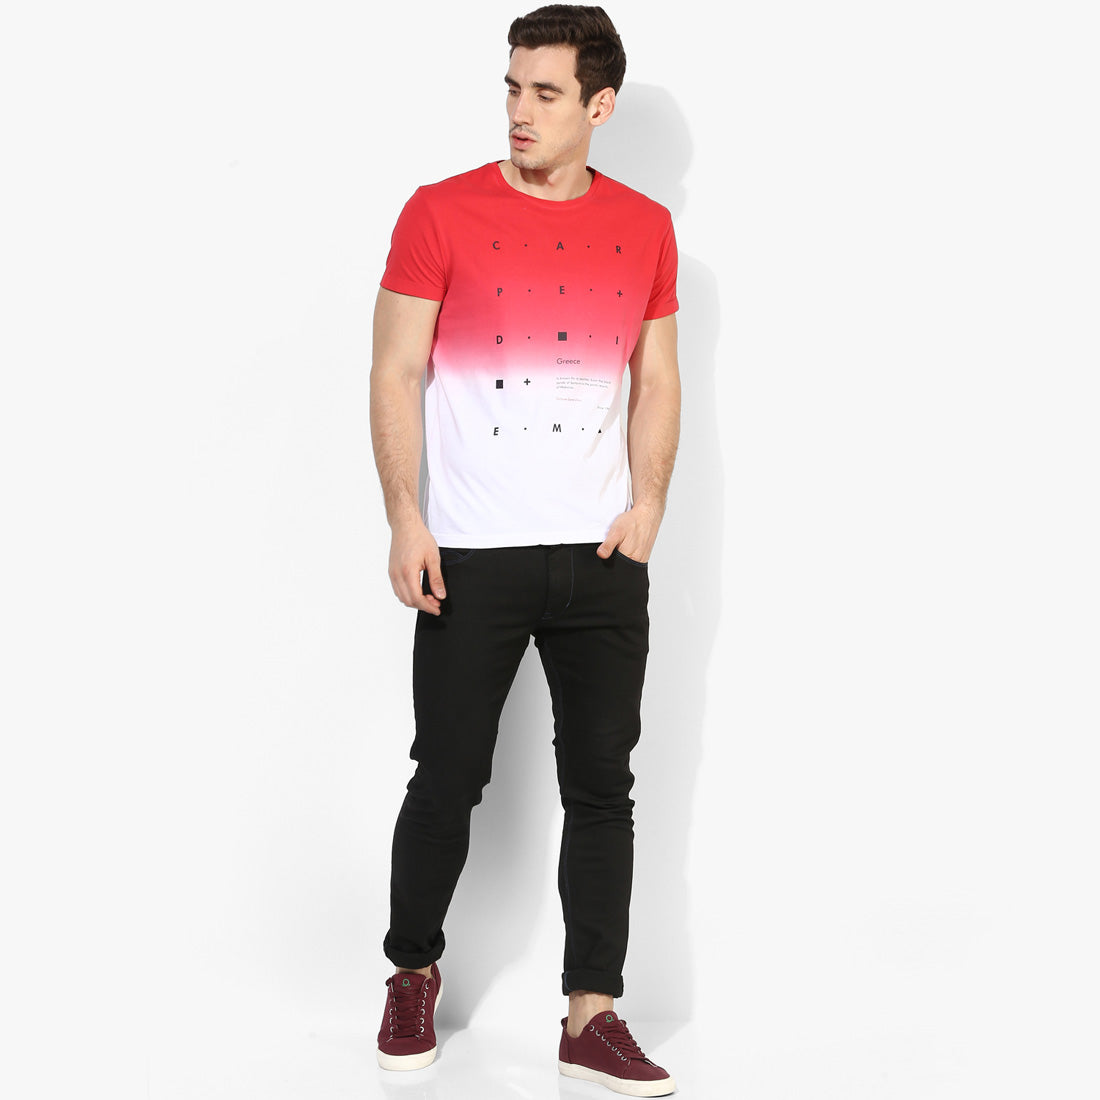 Miami Red CD Graphic Ombre Tee